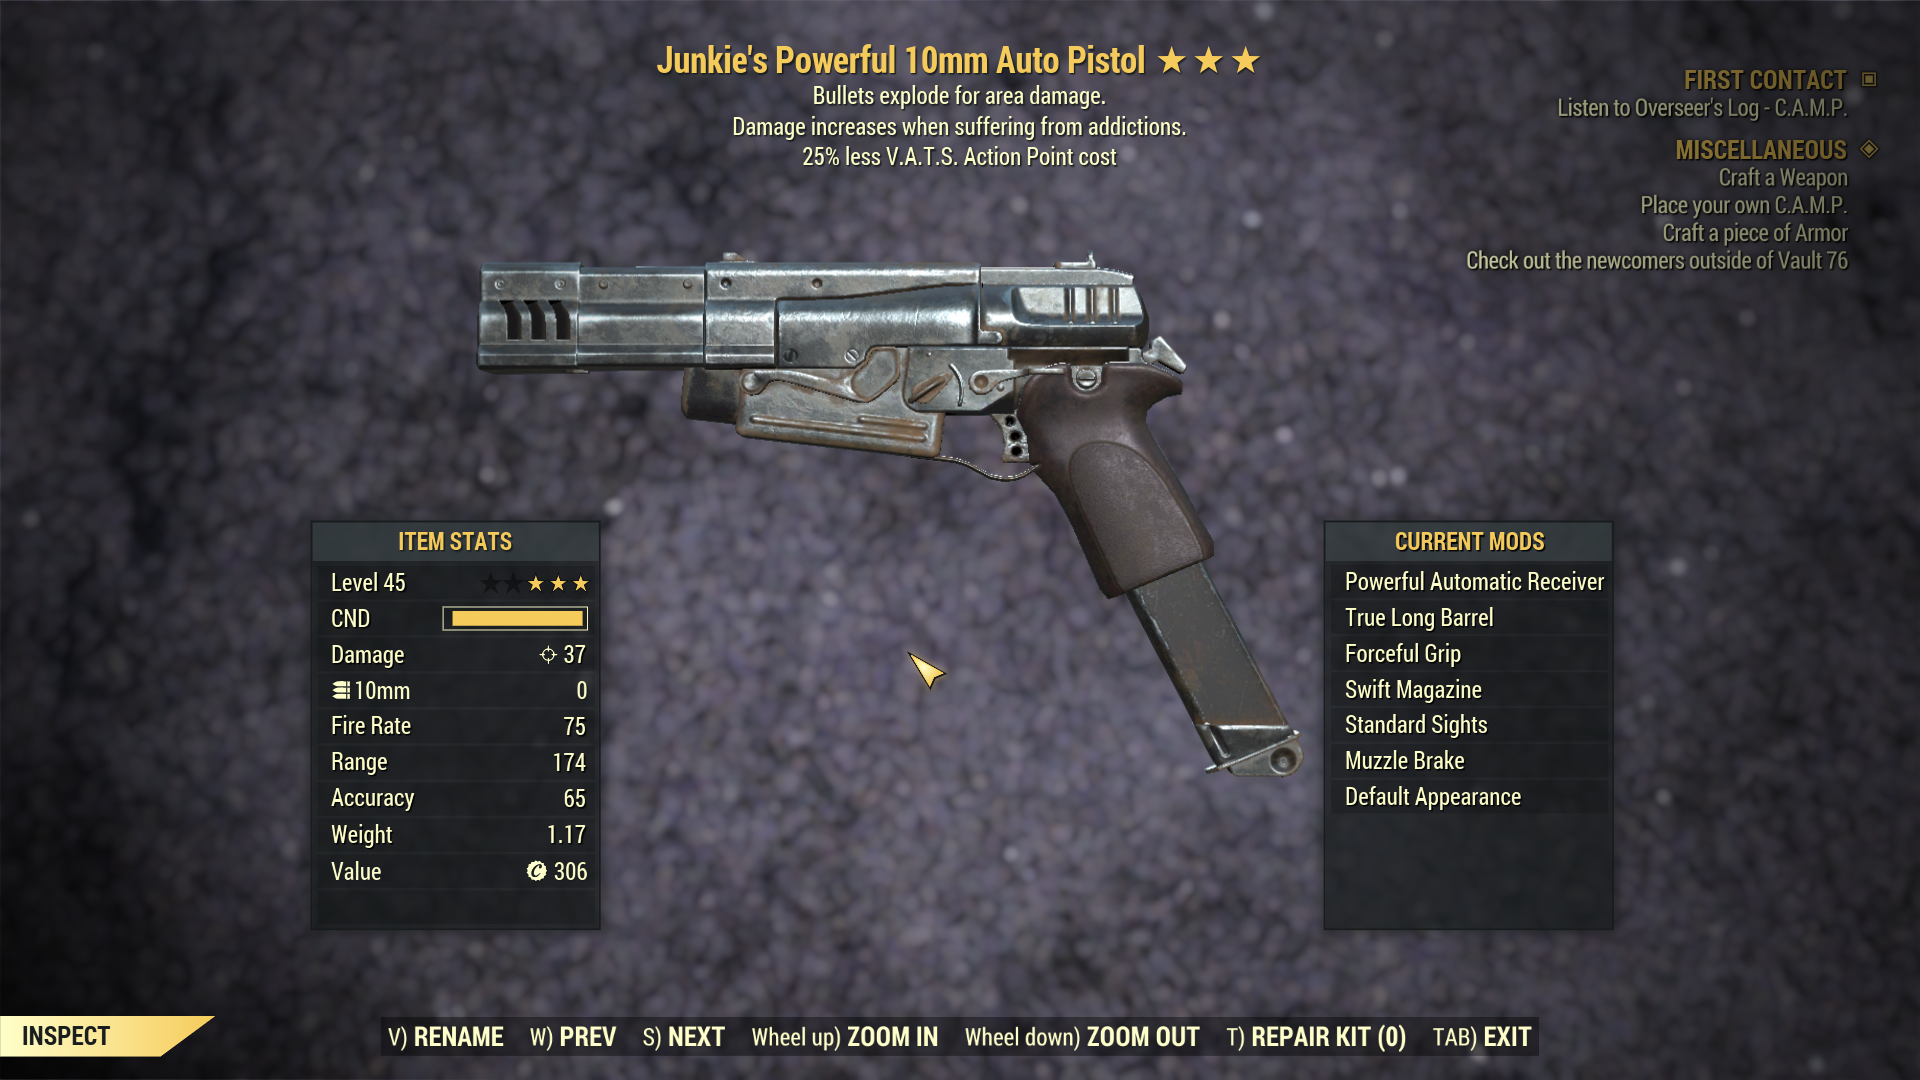 [PC] Junkie 10mm Pistol Explosive [ 25% Less VATS AP]